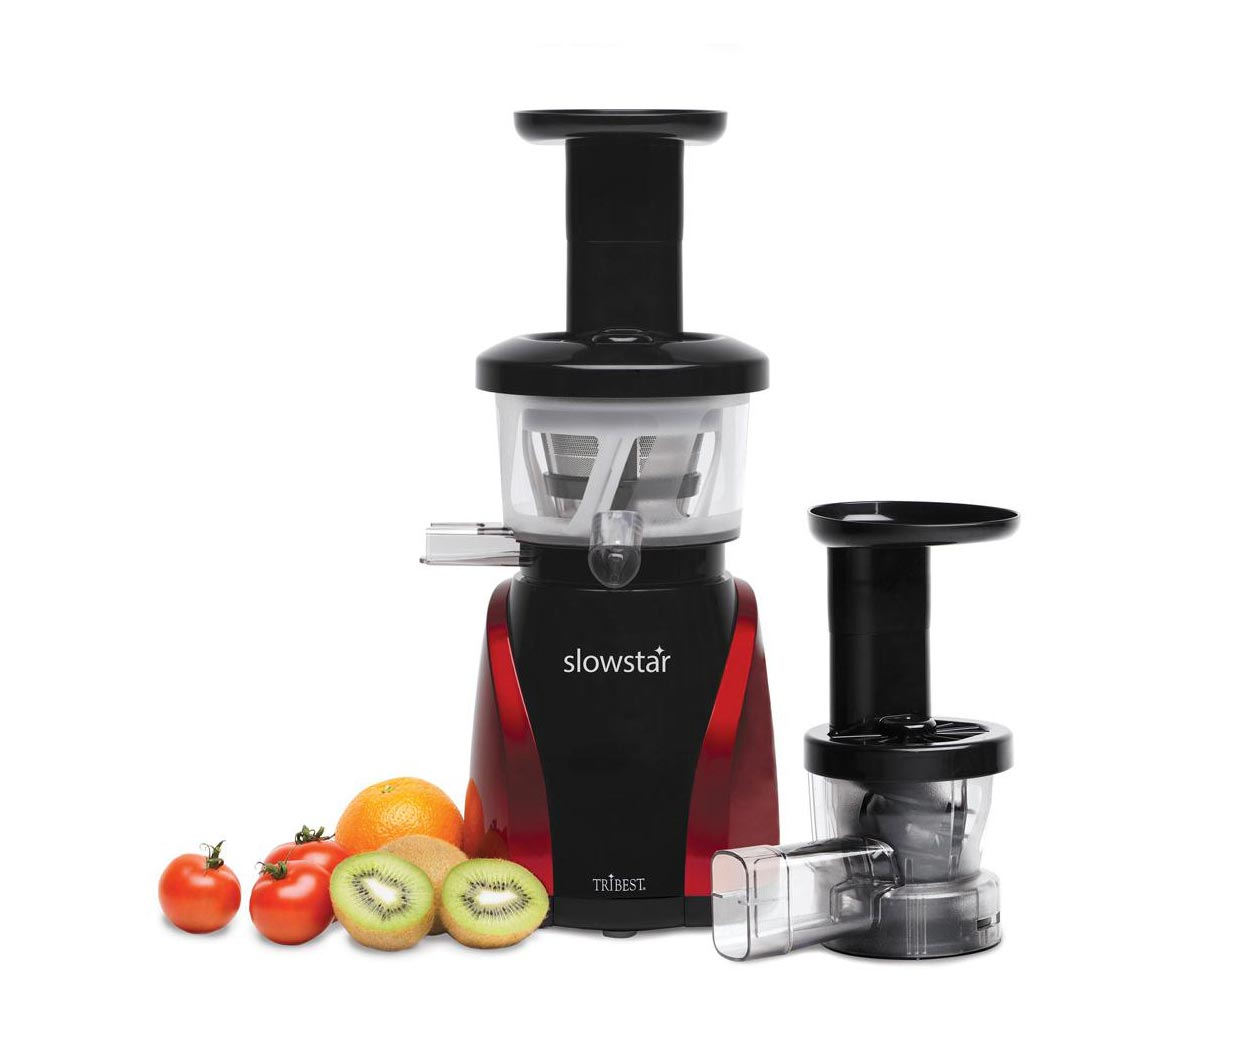 Slow Juicer Vertikal Horizontal : Tribest Slowstar Juicer Review. Is this Tribest juicer the best juicer to buy?